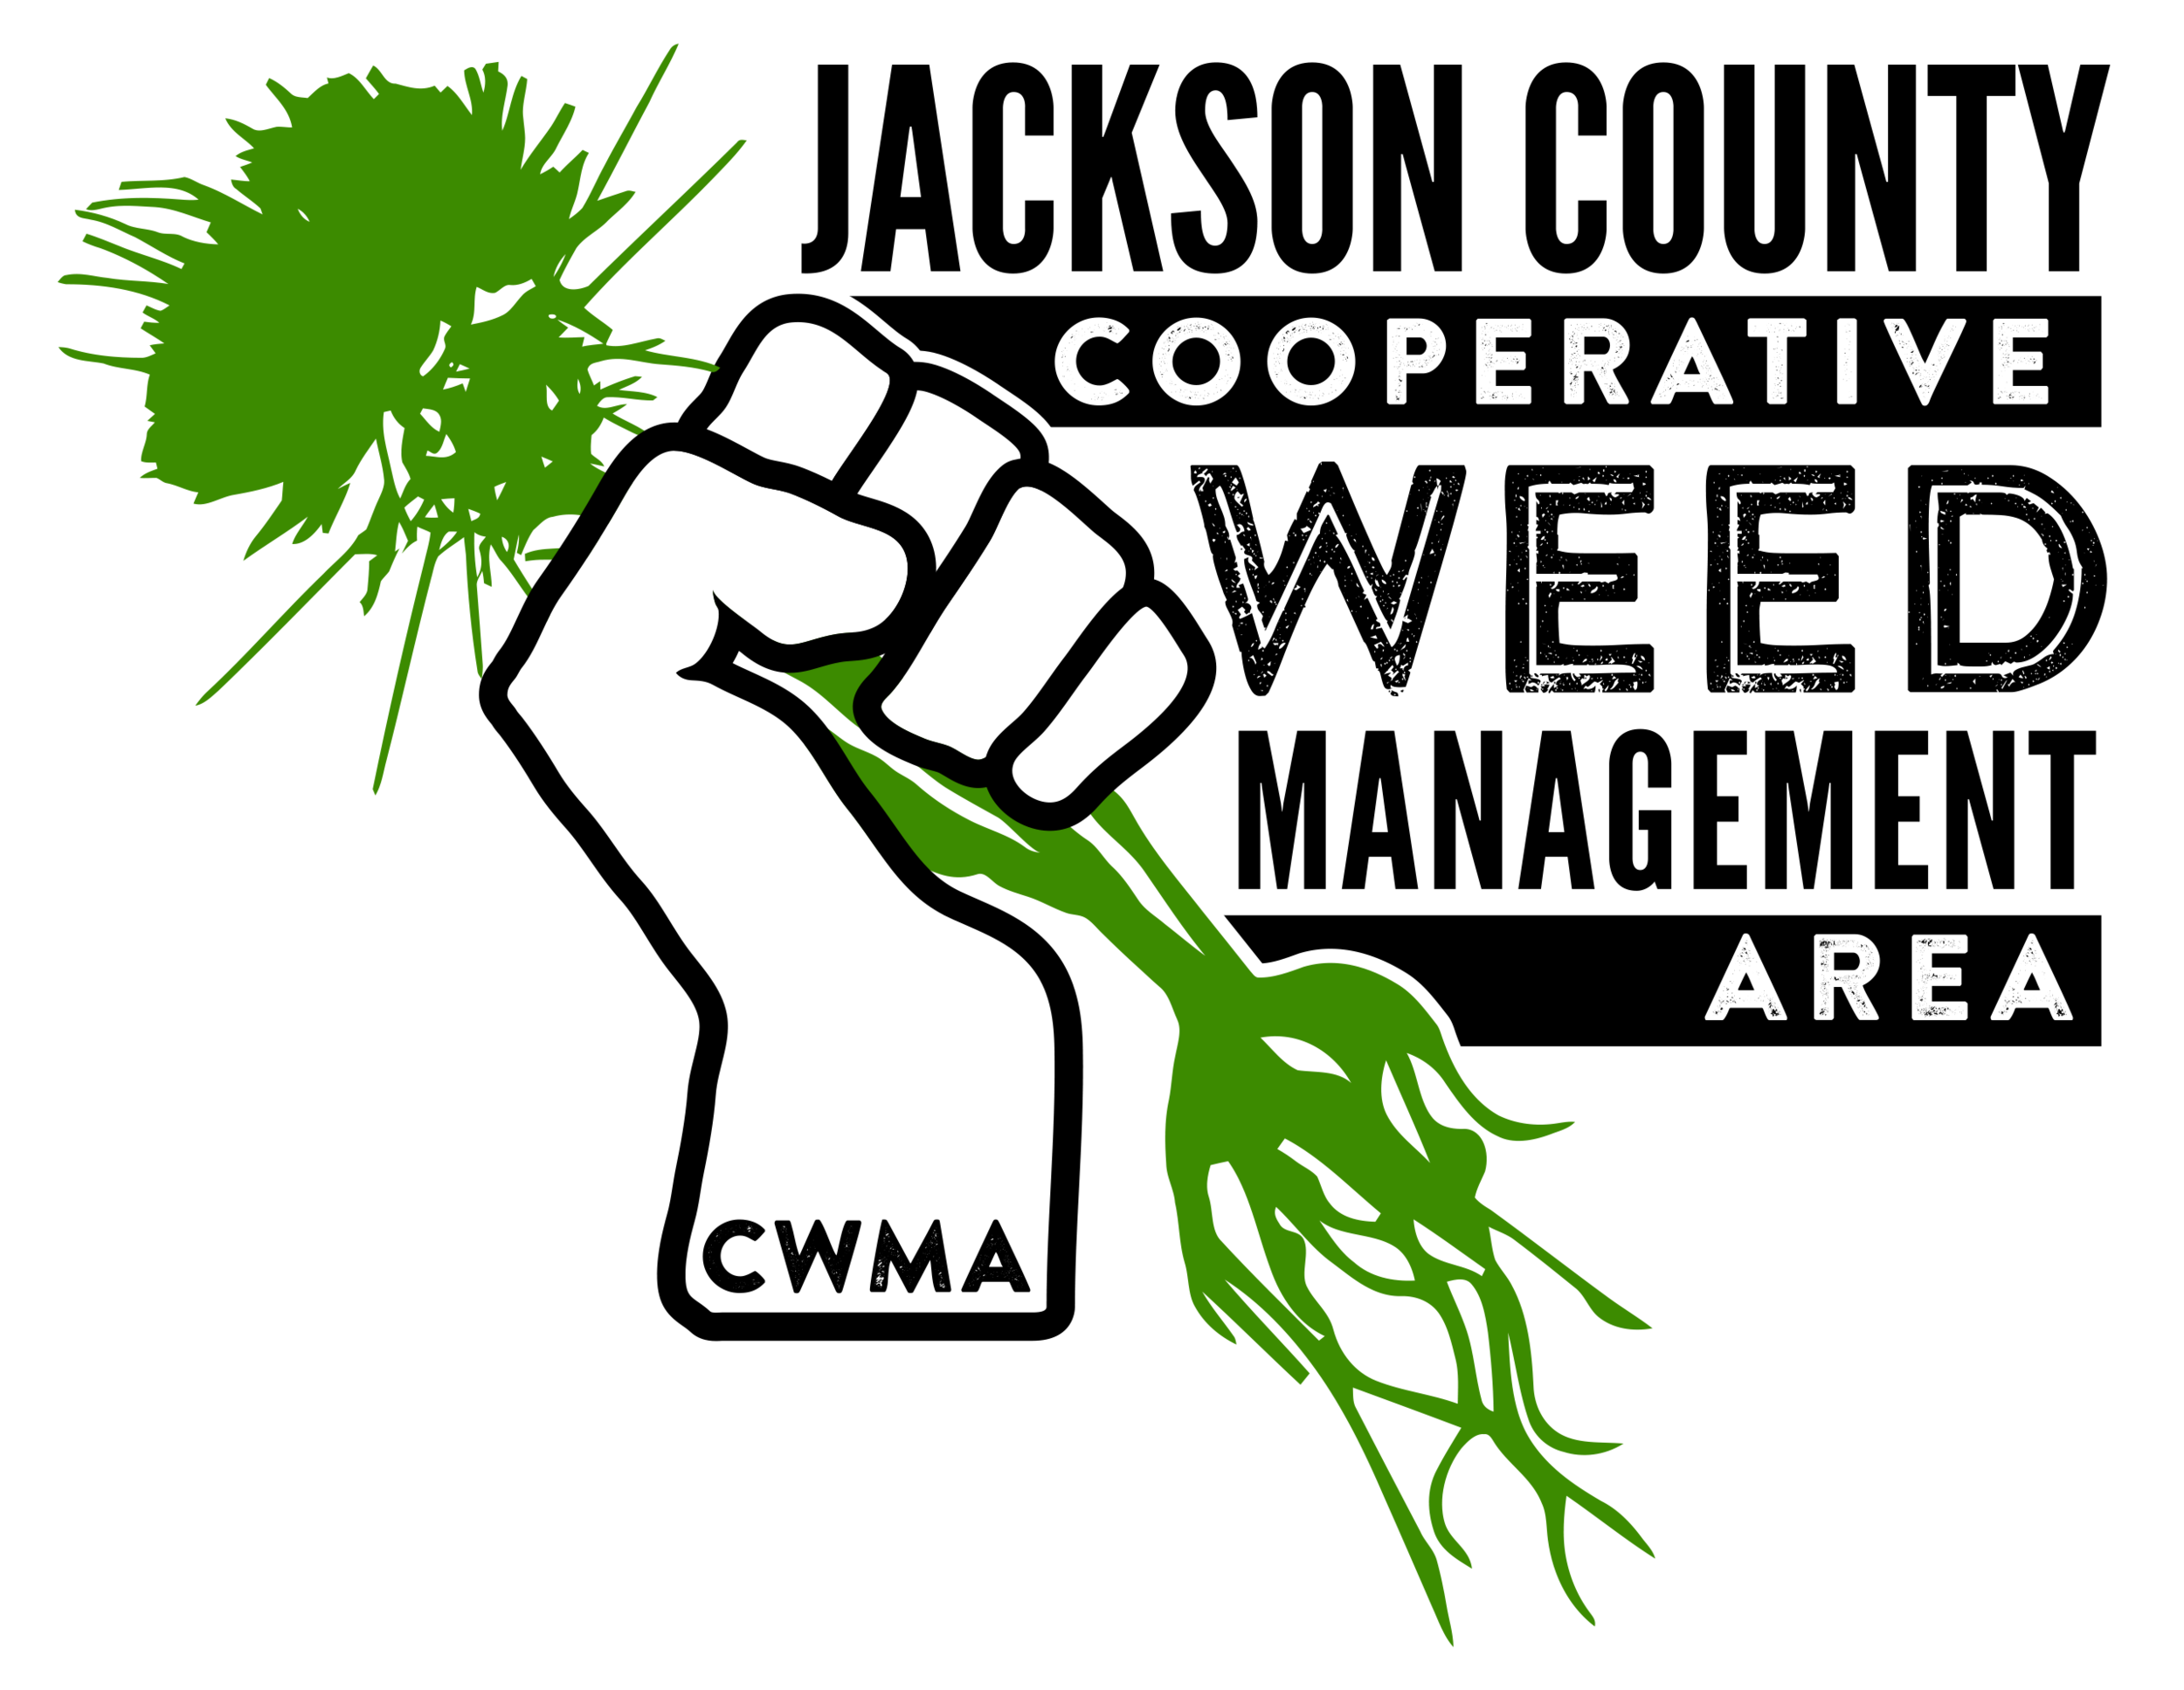 jackson co CWMA weeds logo.png